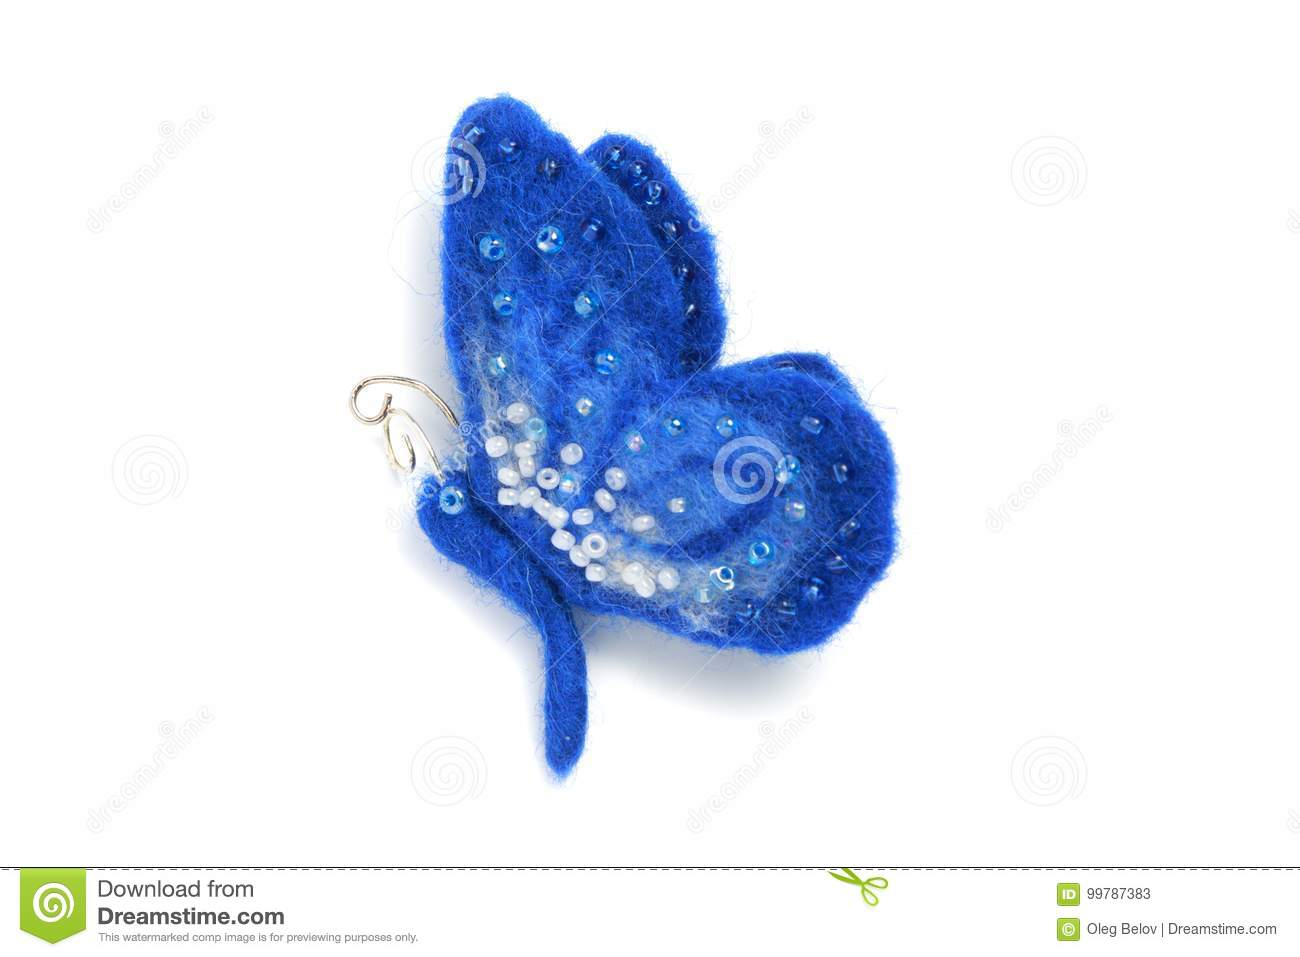 Handmade brooch from felt in the form of a blue butterfly, decorated with beads on a white background